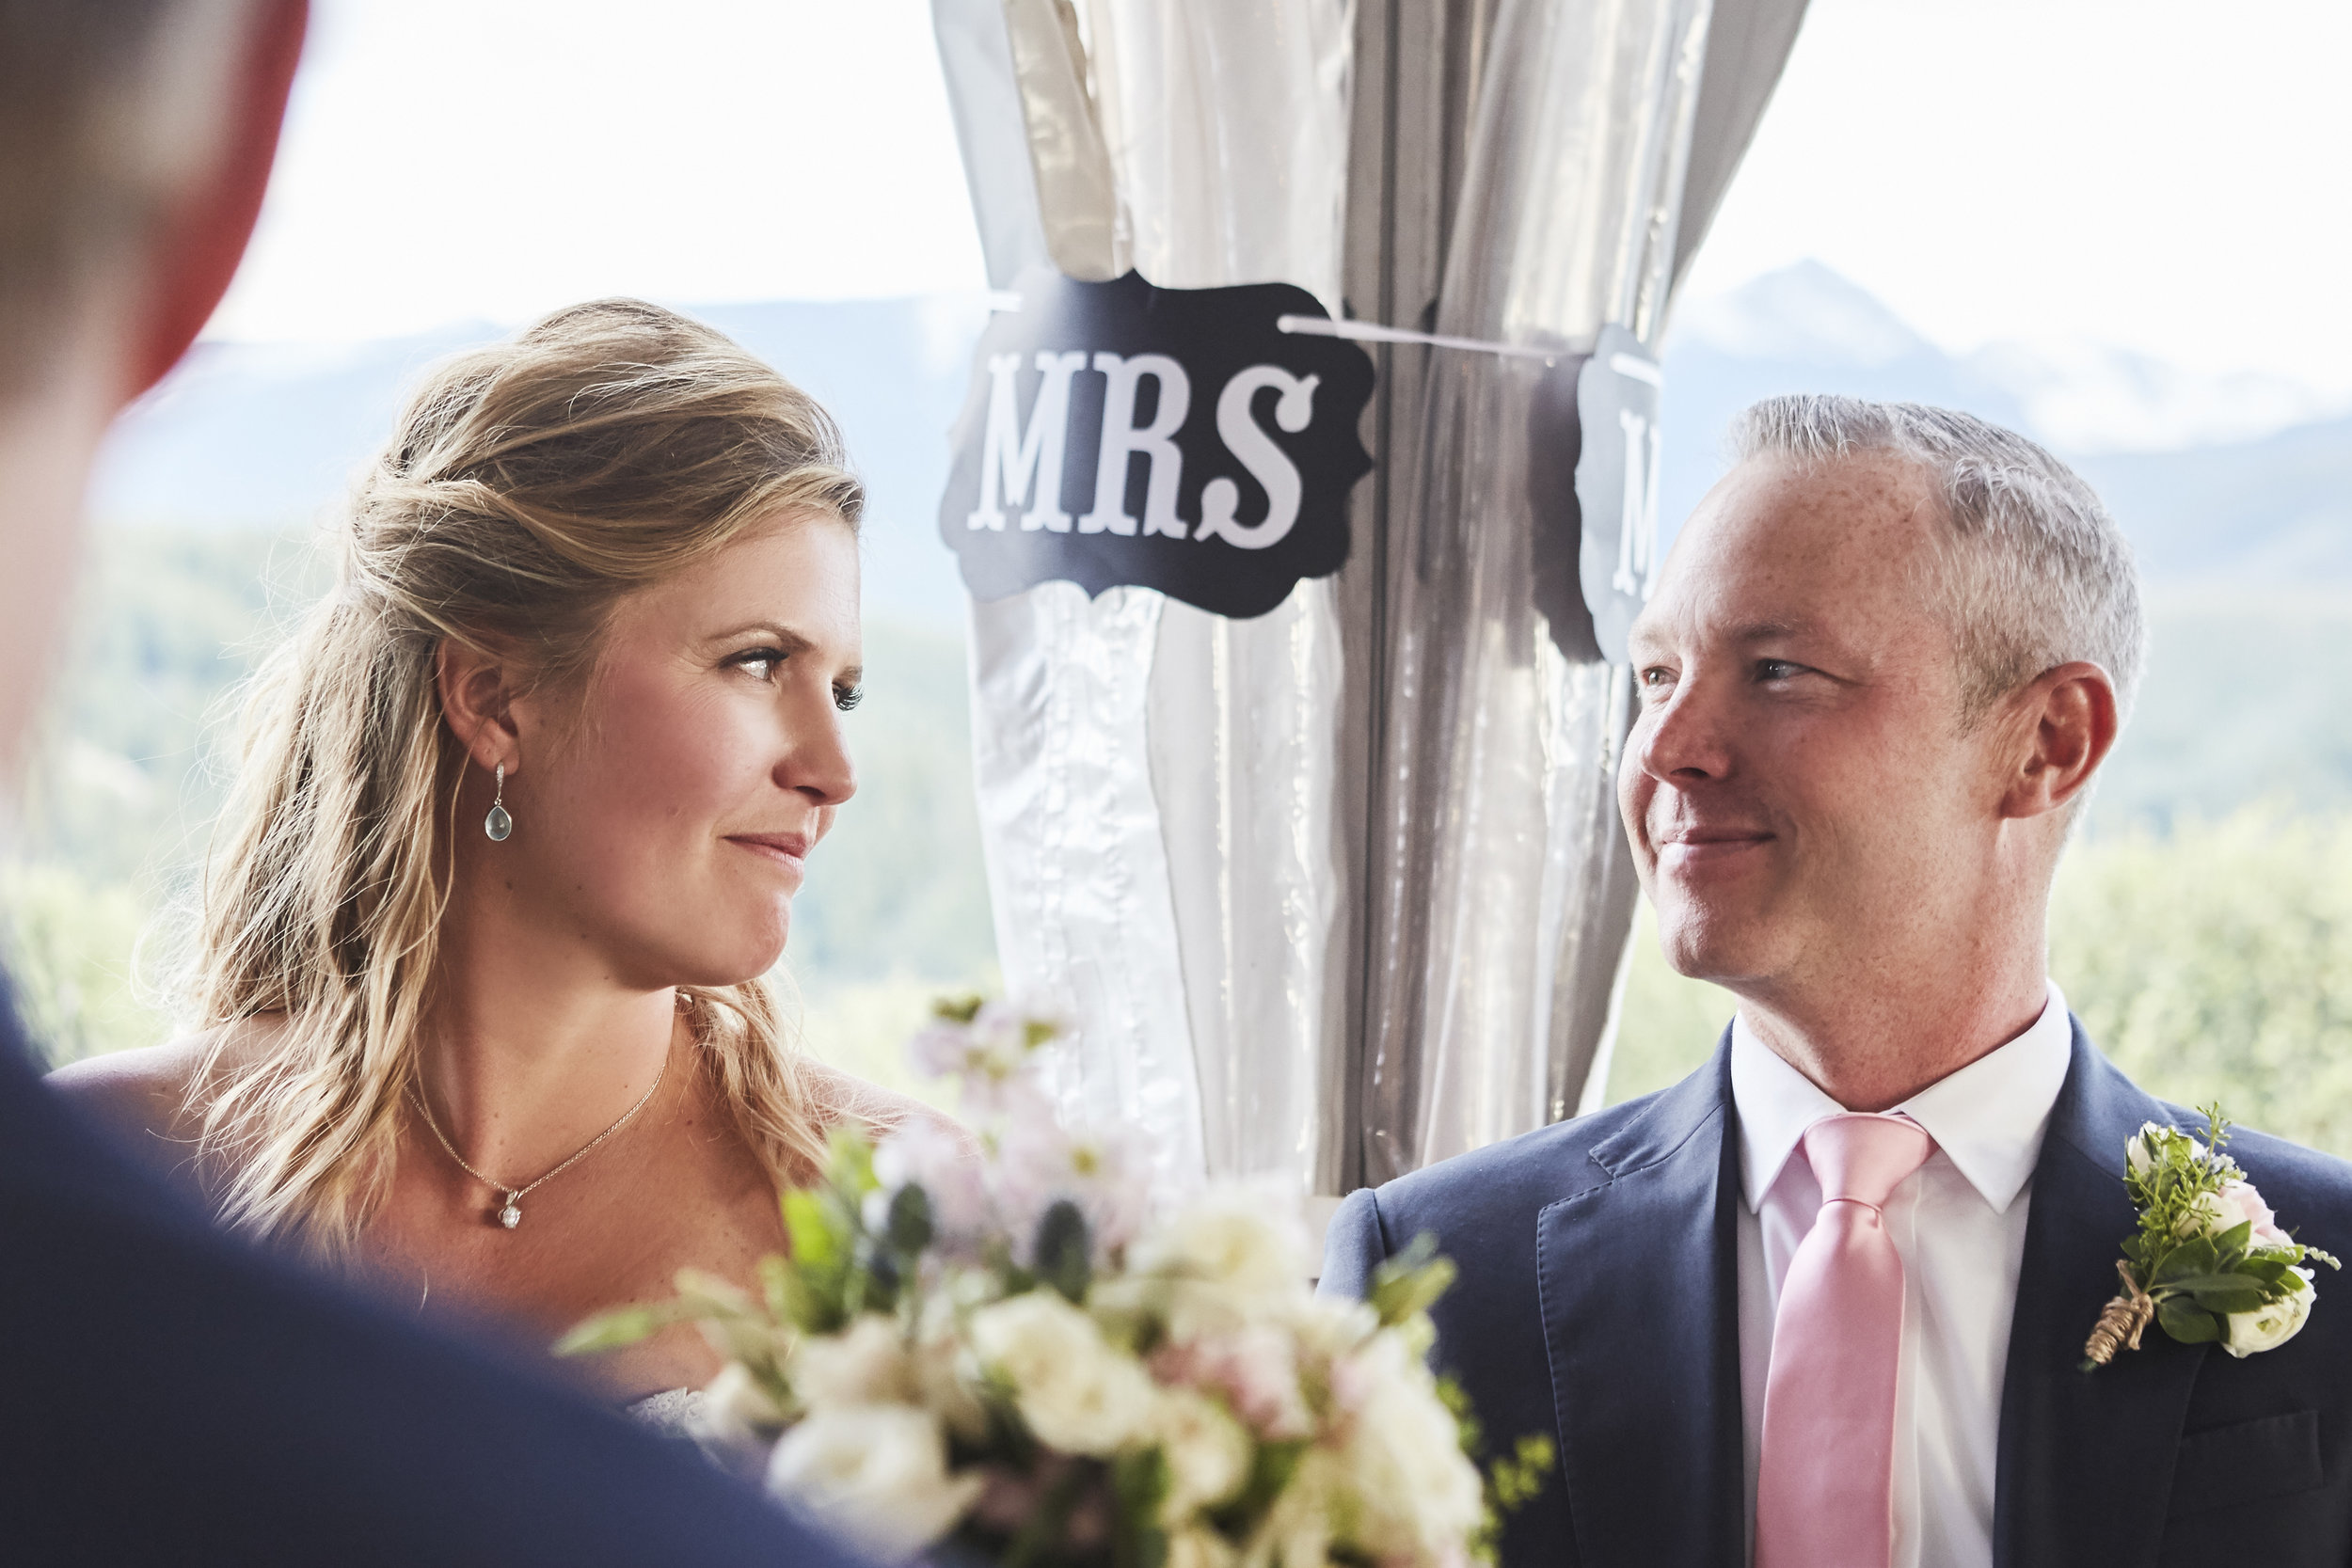 James + Alana's Private Vail Wedding - Vail, Colorado // Adventurous Colorado Couple